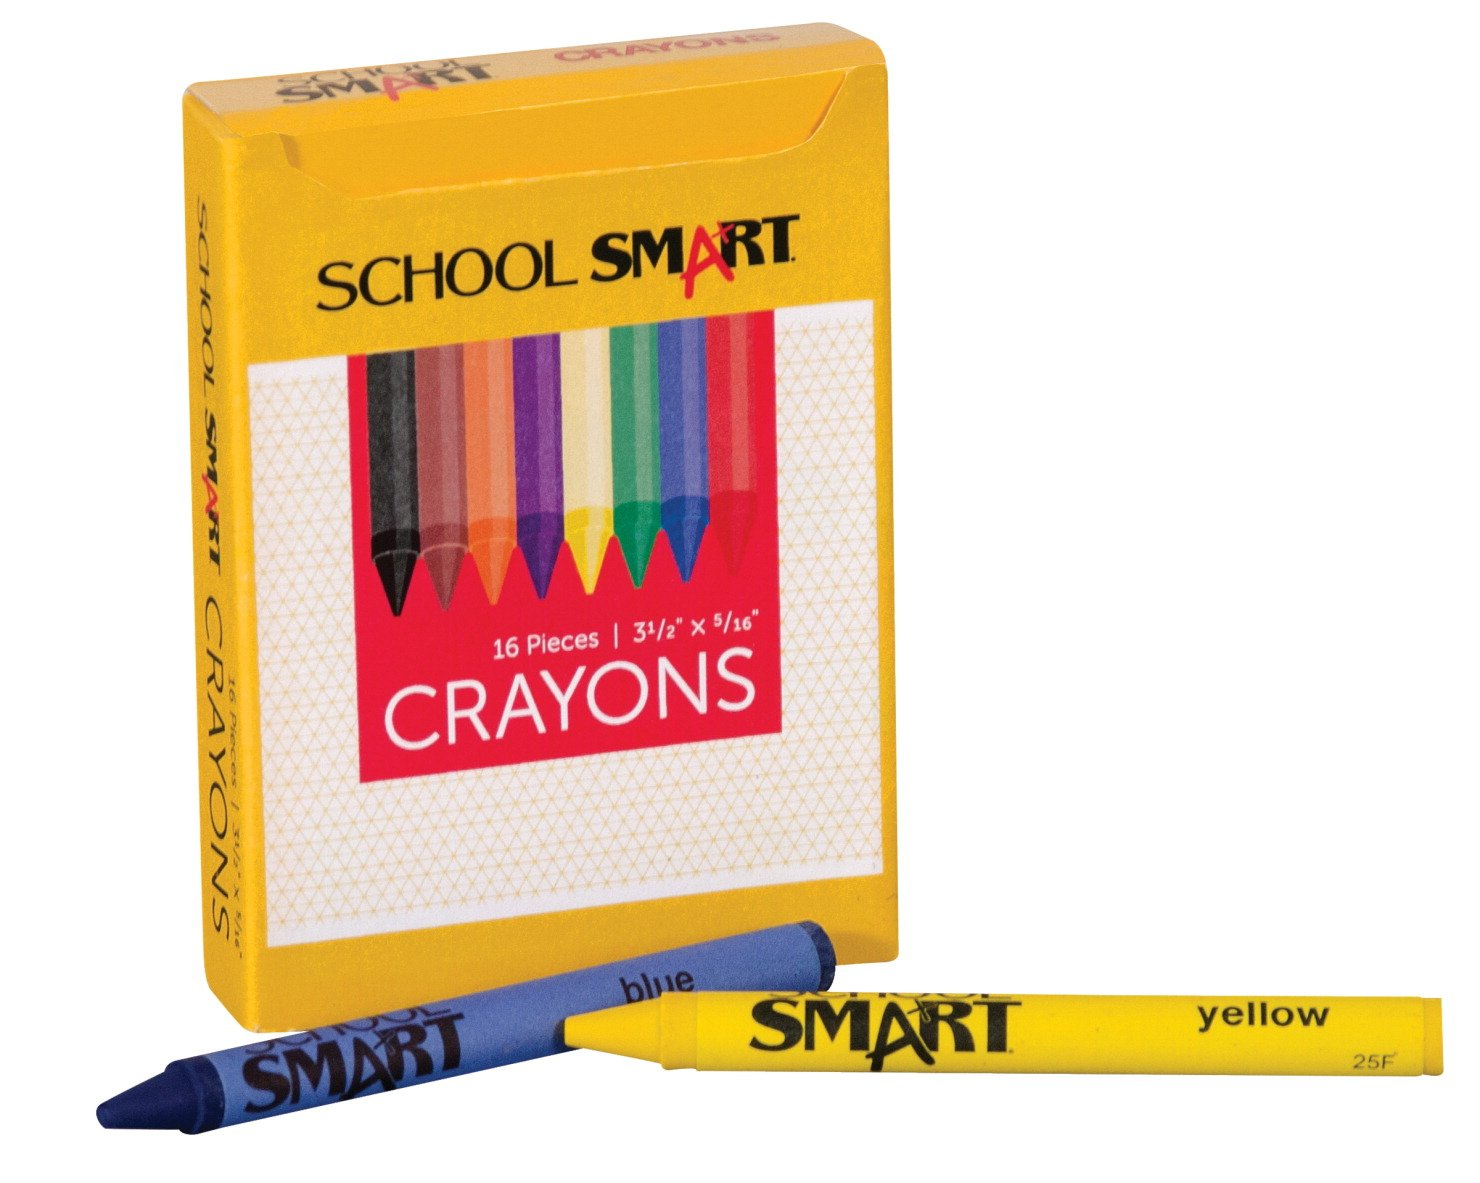 School Smart Standard Non-Toxic Crayons - 3 1/2 x 5/16 inches - Set of 16 - Assorted Colors